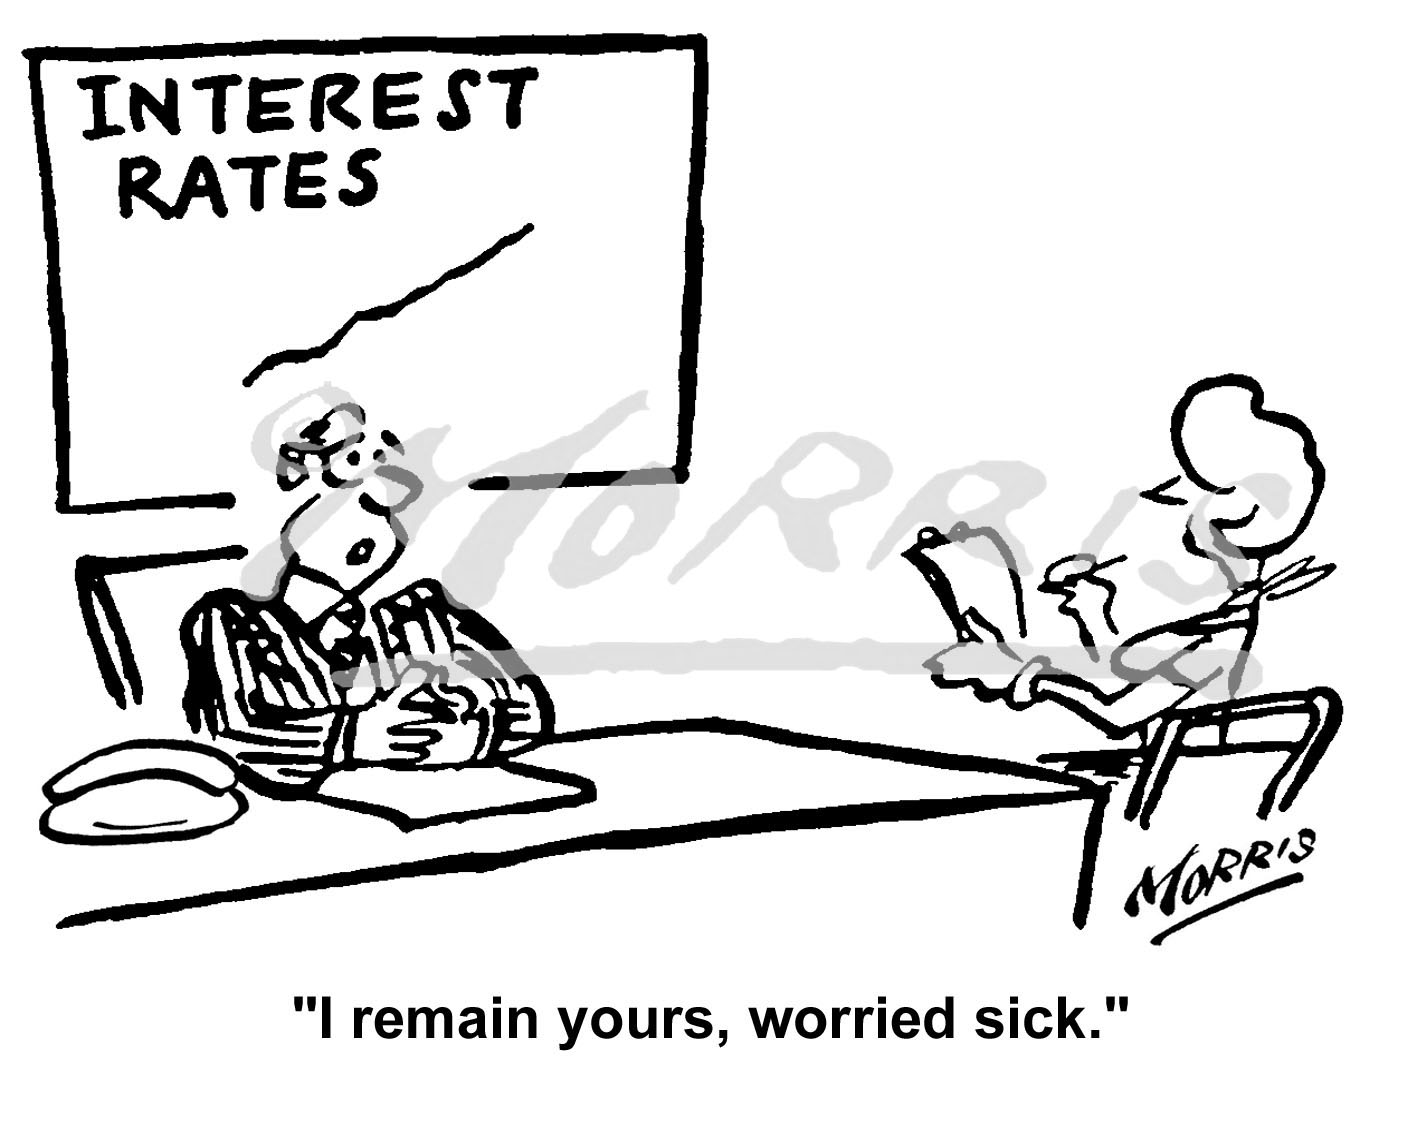 Interest Rates cartoon Ref: 0173bw